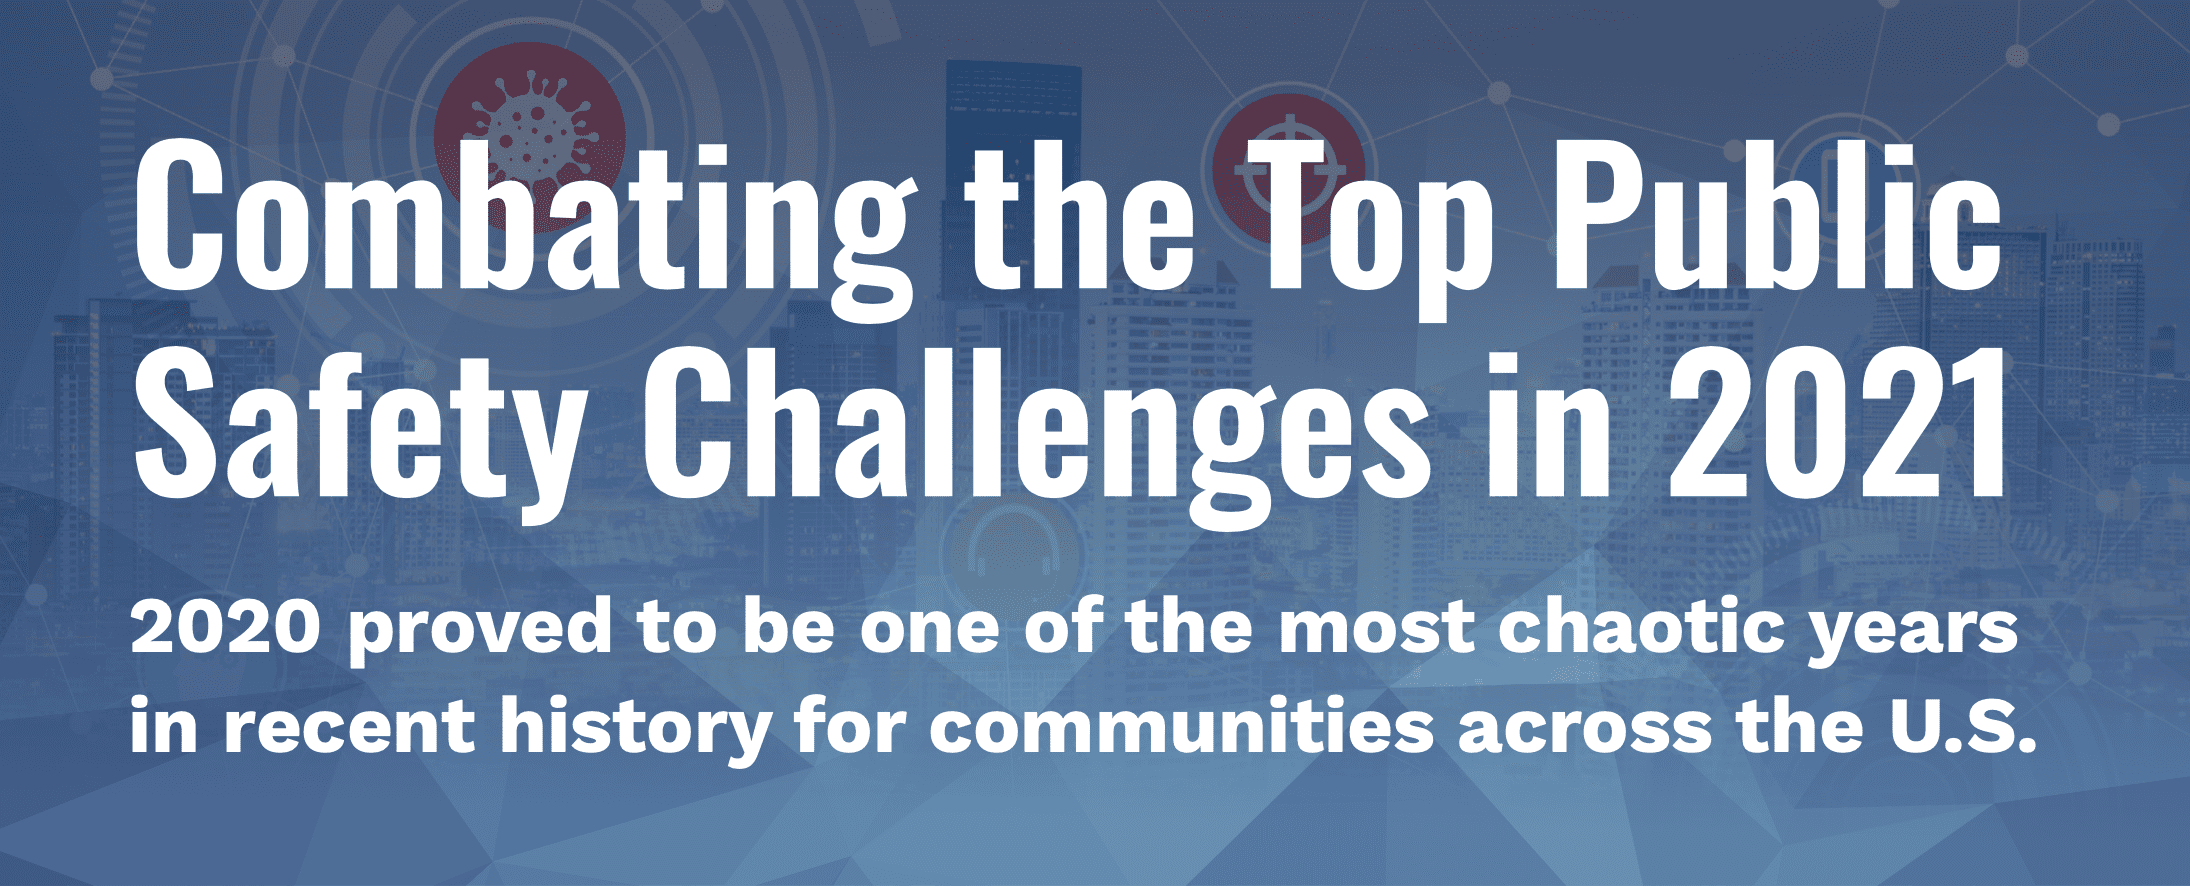 top-public-safety-challenges